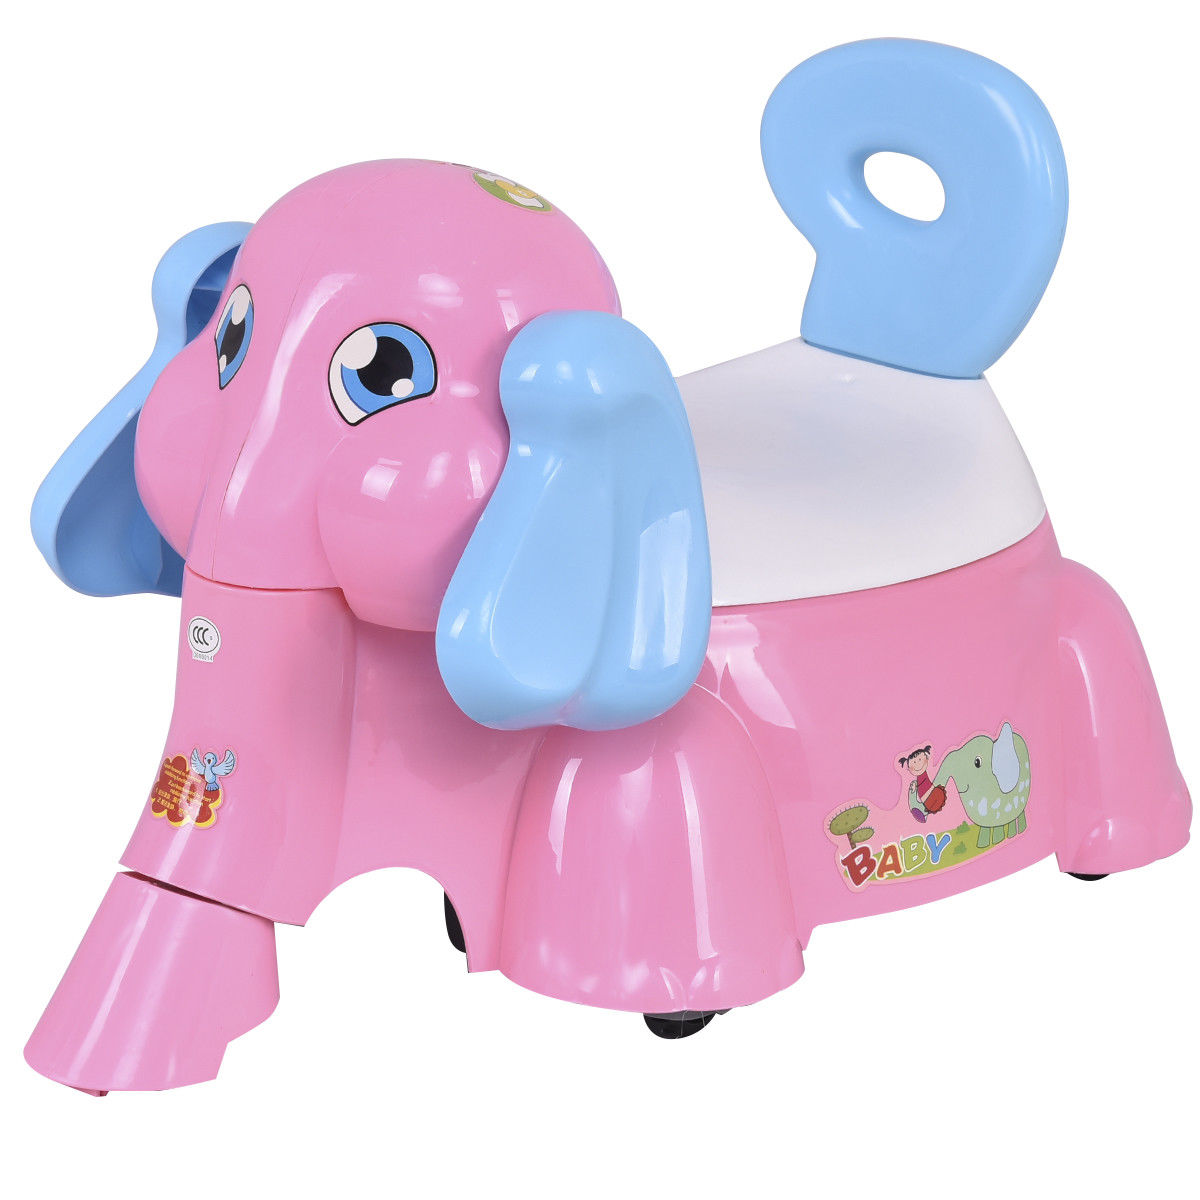 Gymax Kids Baby Potty Training Toilet Trainer Seat with Music Function Pink Elephant